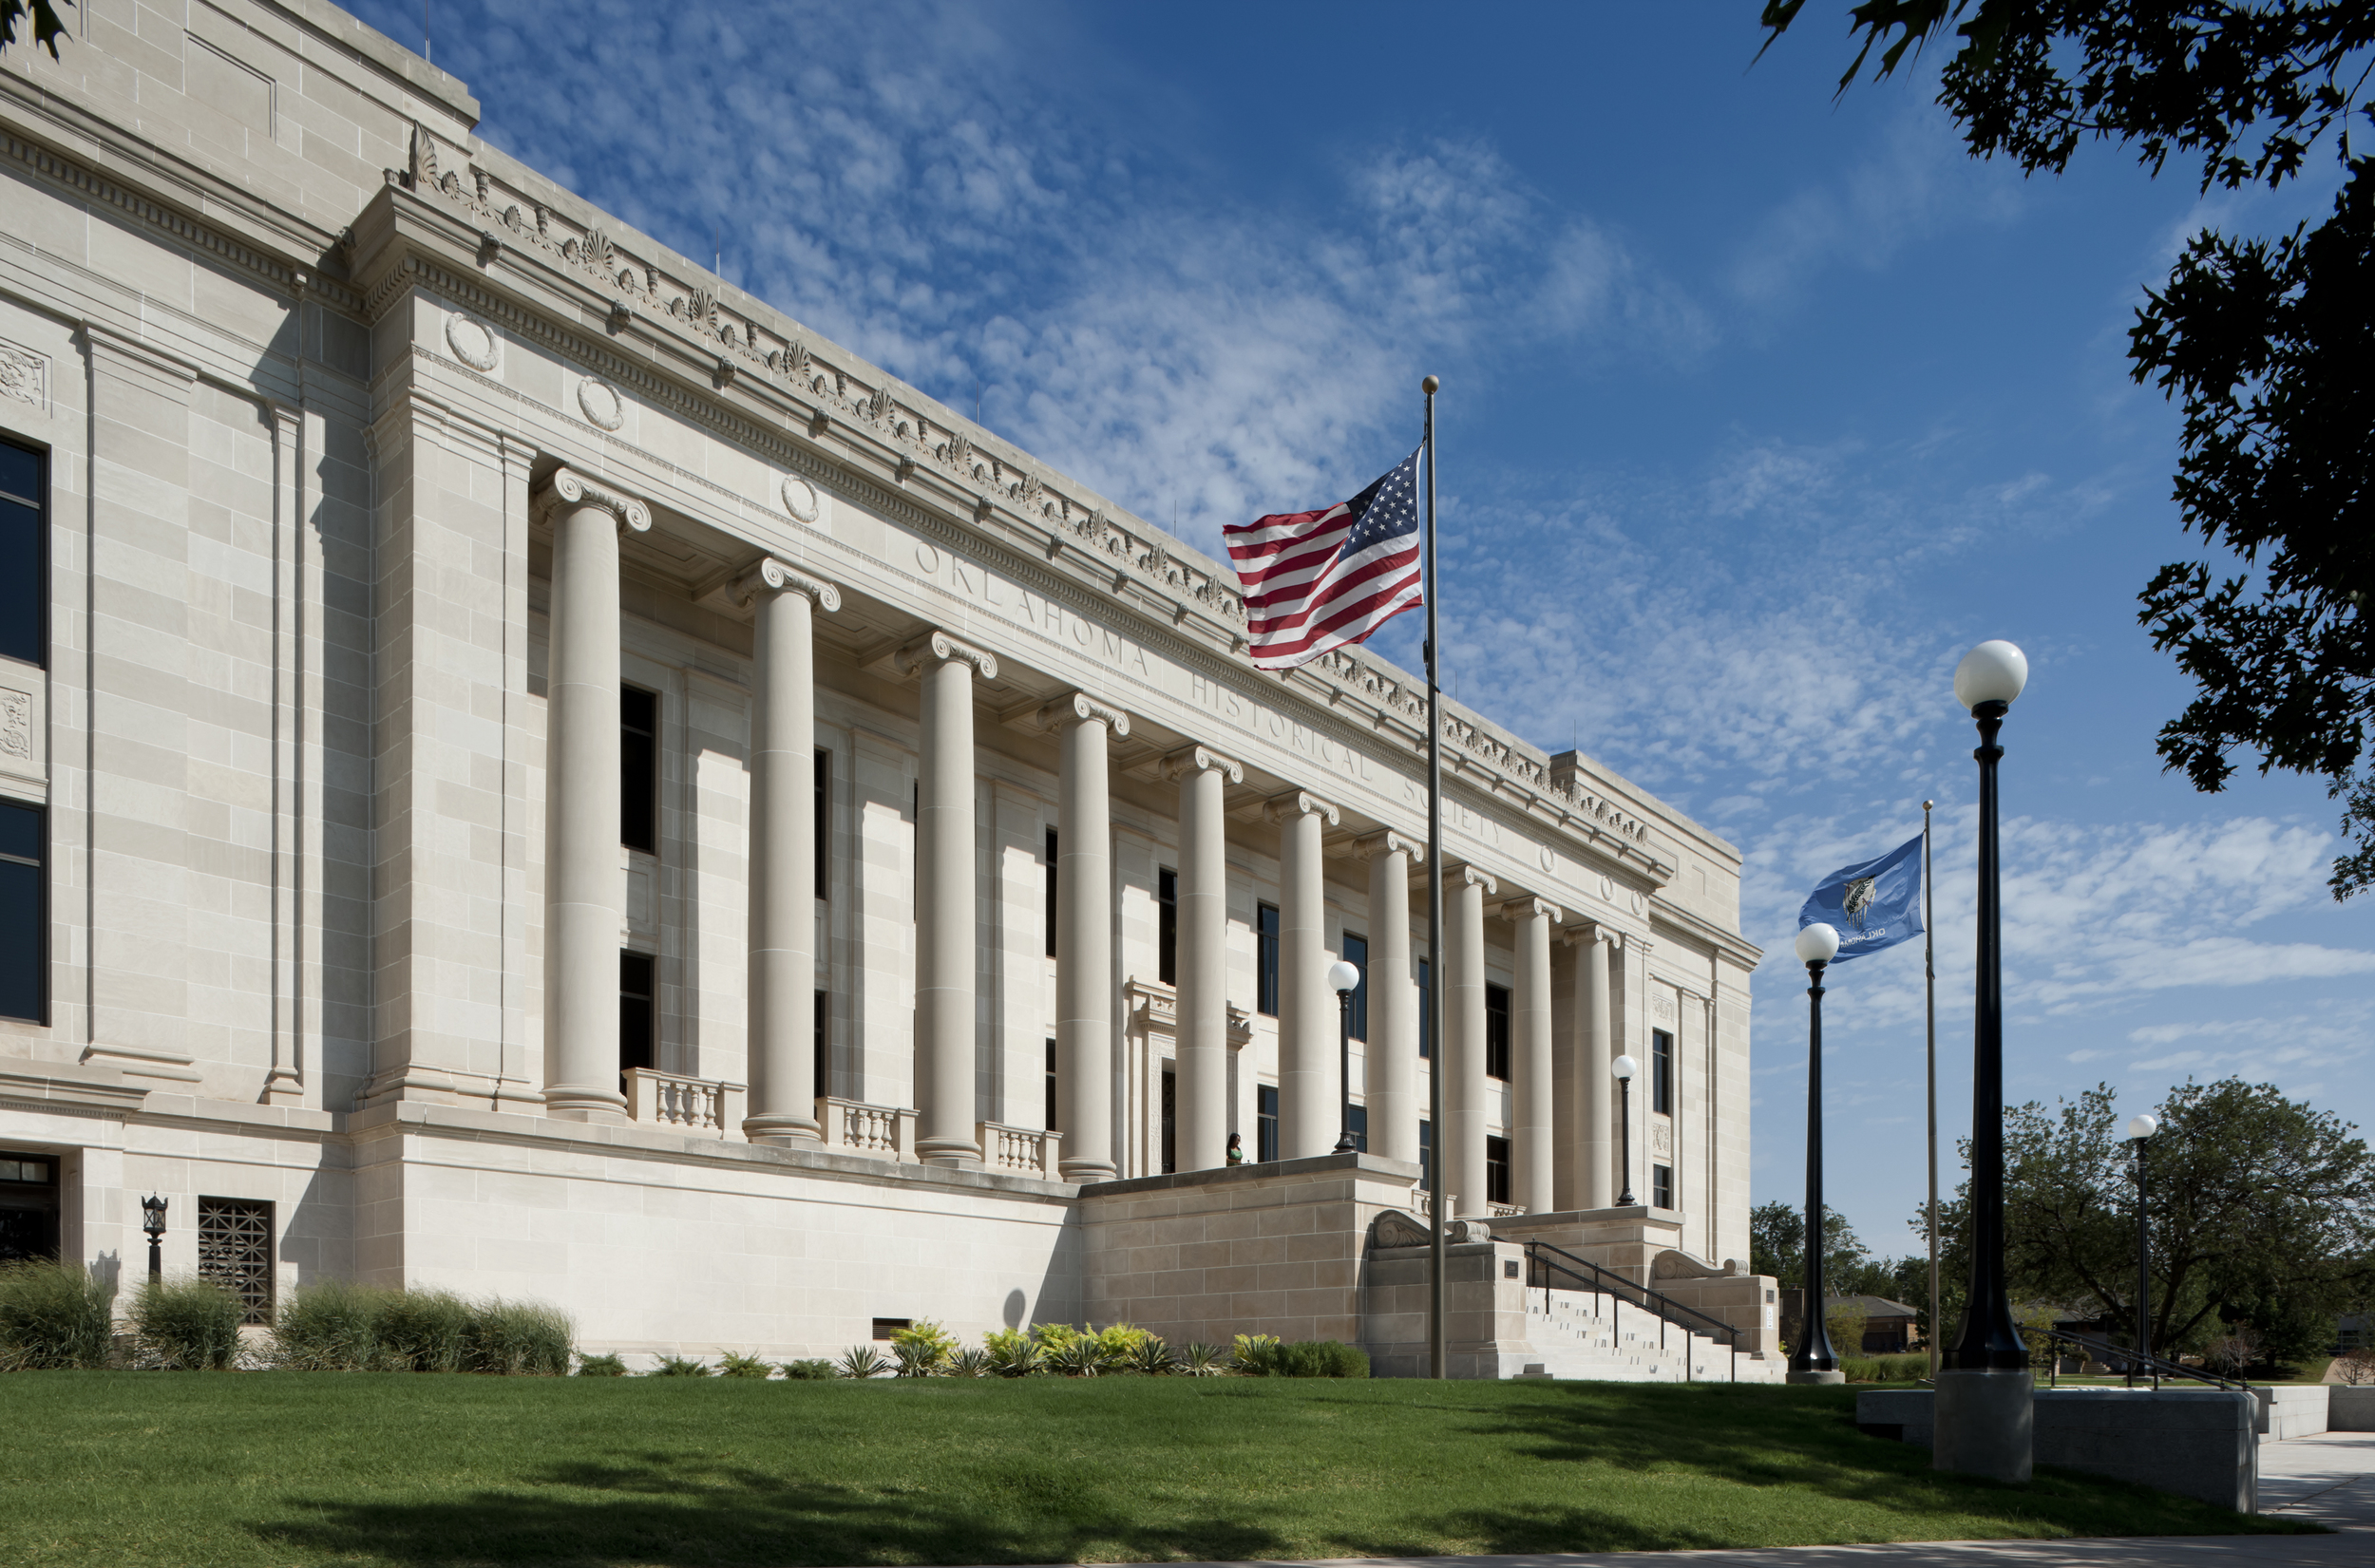 Oklahoma State Judicial Center- Office of the Supreme Court